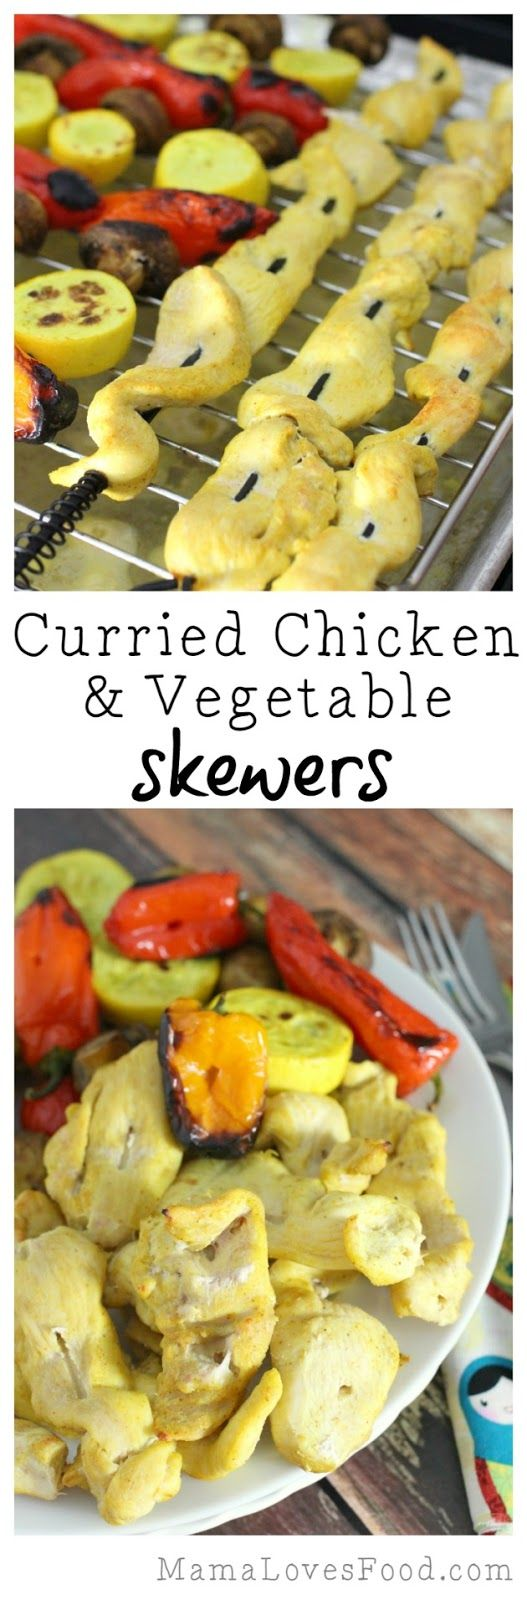 Curried Chicken and Vegetable Skewers